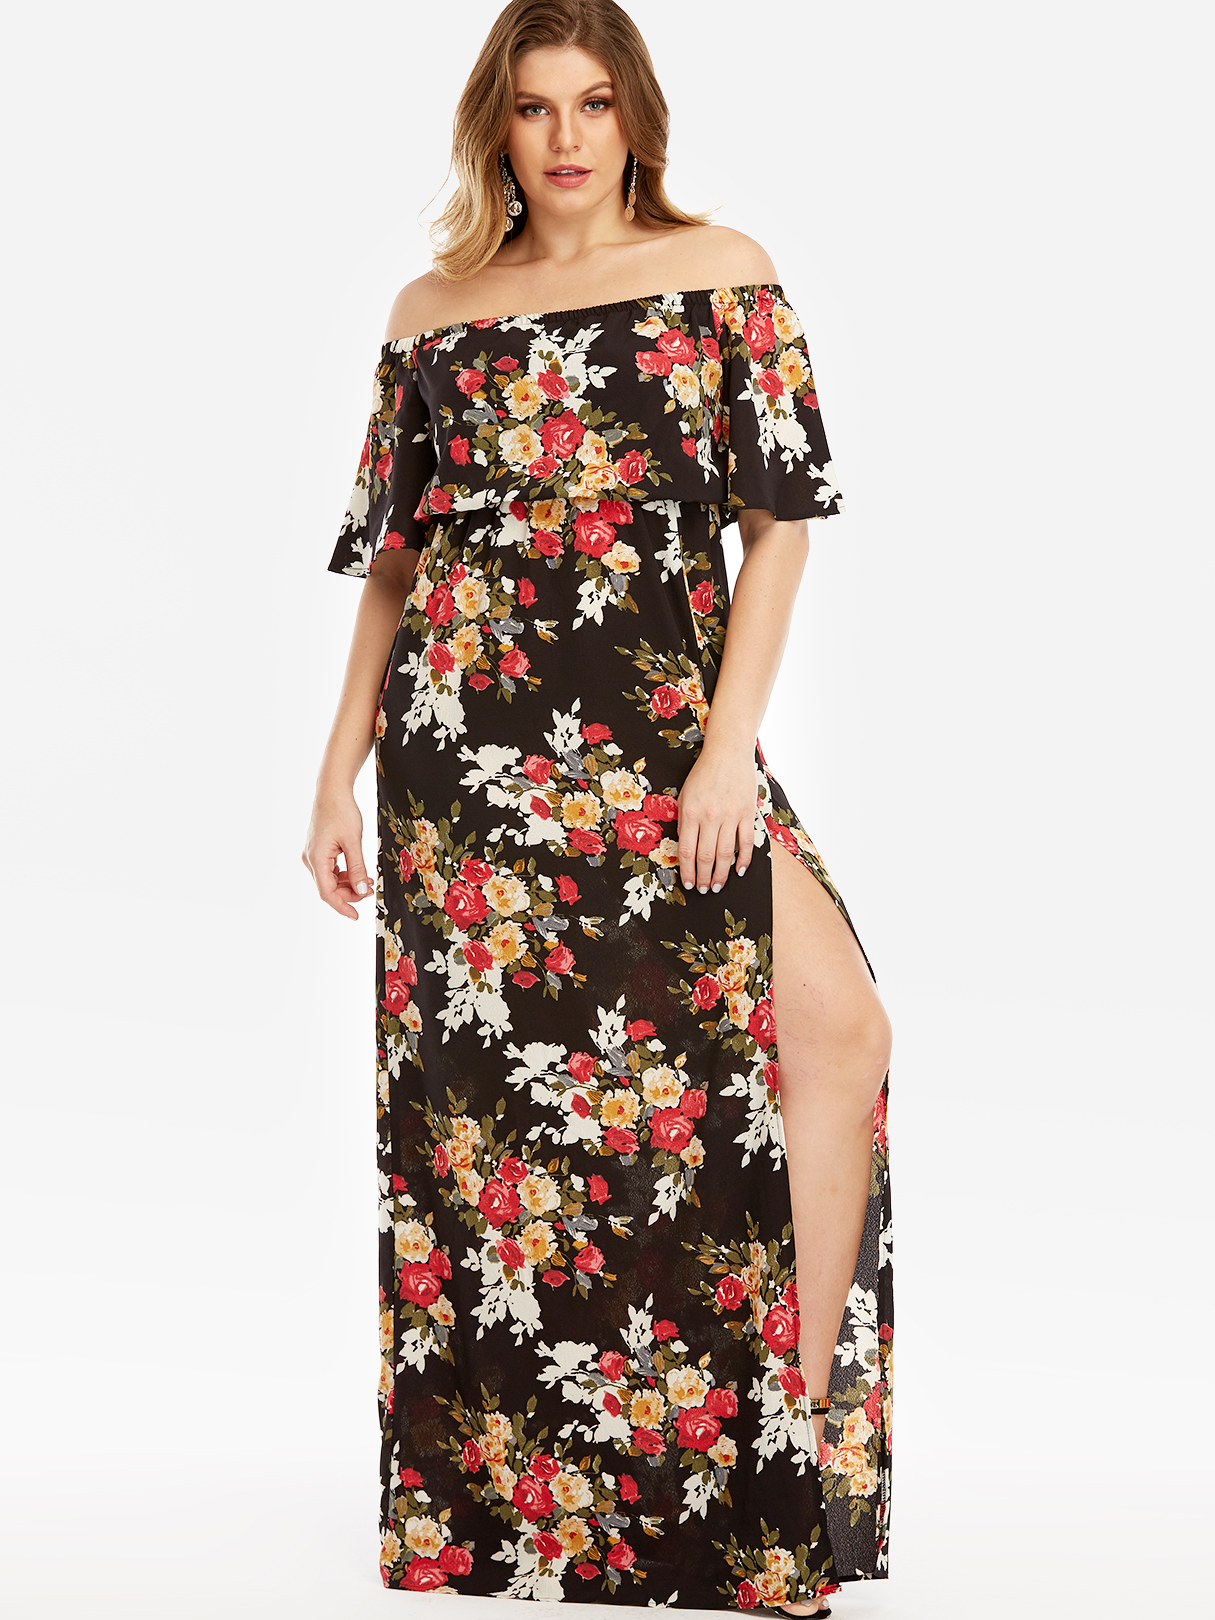 Black Floral Print Off The Shoulder Slit Hem Maxi Dress цена